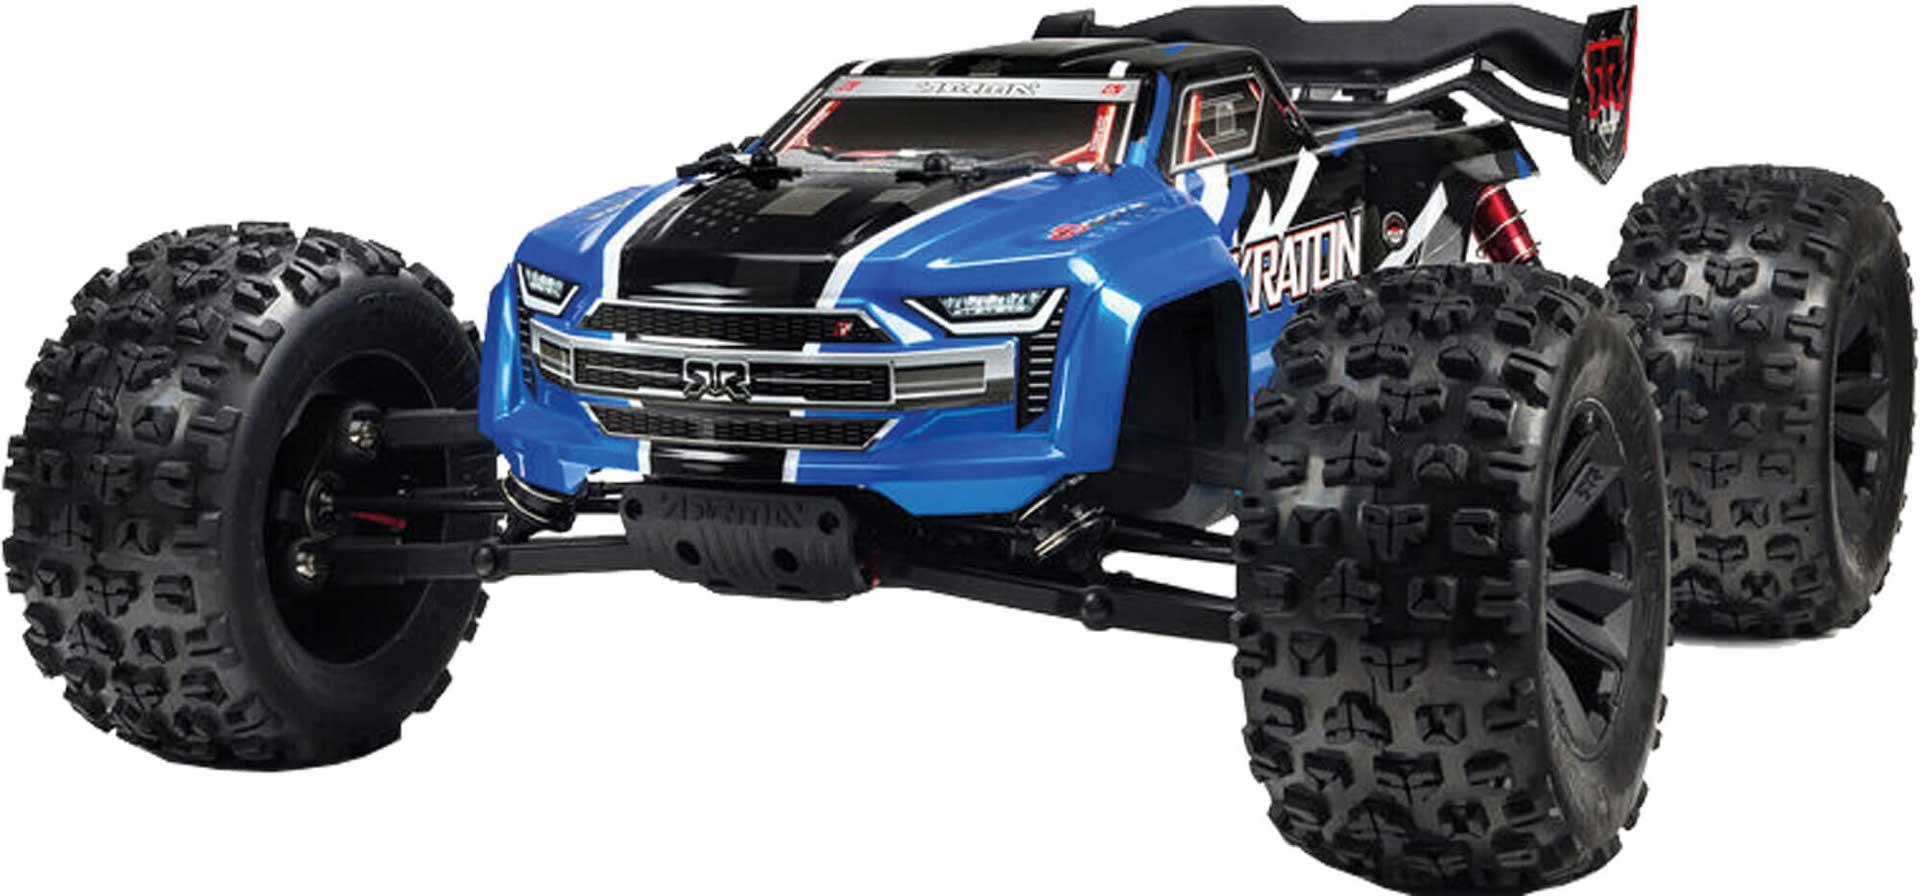 ARRMA Kraton 6S V5 4WD BLX 1/8 RTR Blue Speed Monster Truck